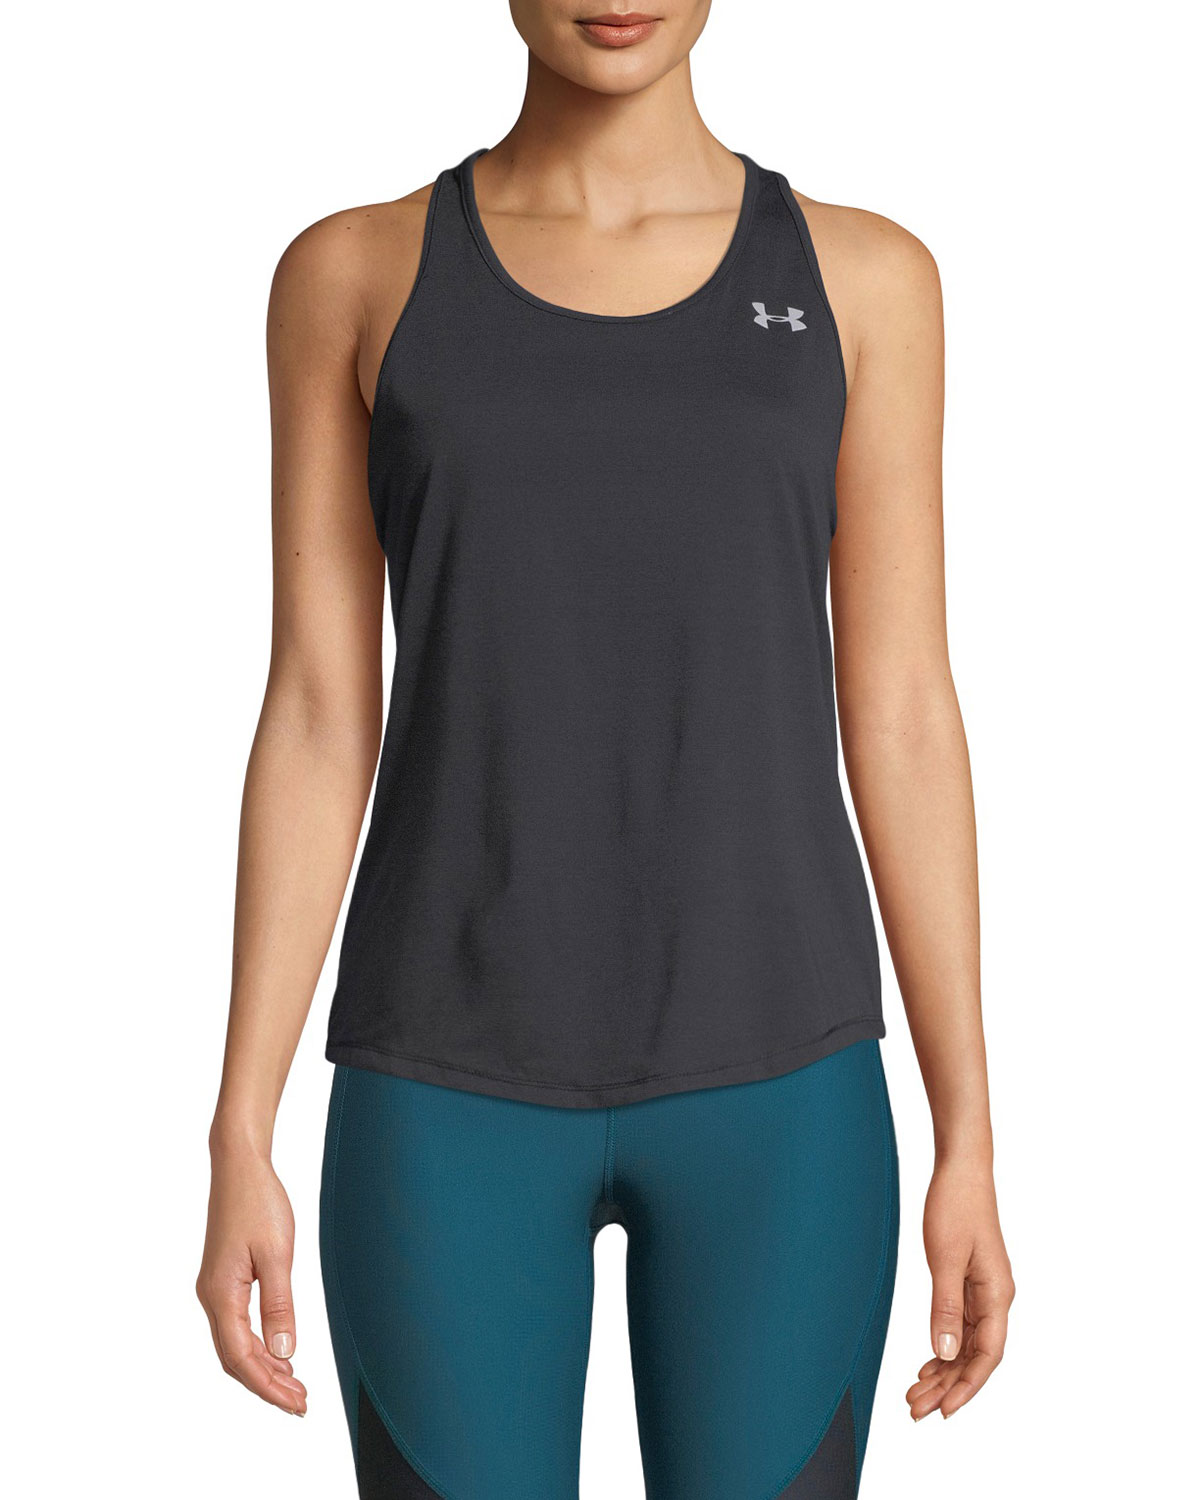 a0db619421bc08 Under Armour Swyft Racerback Performance Tank Top